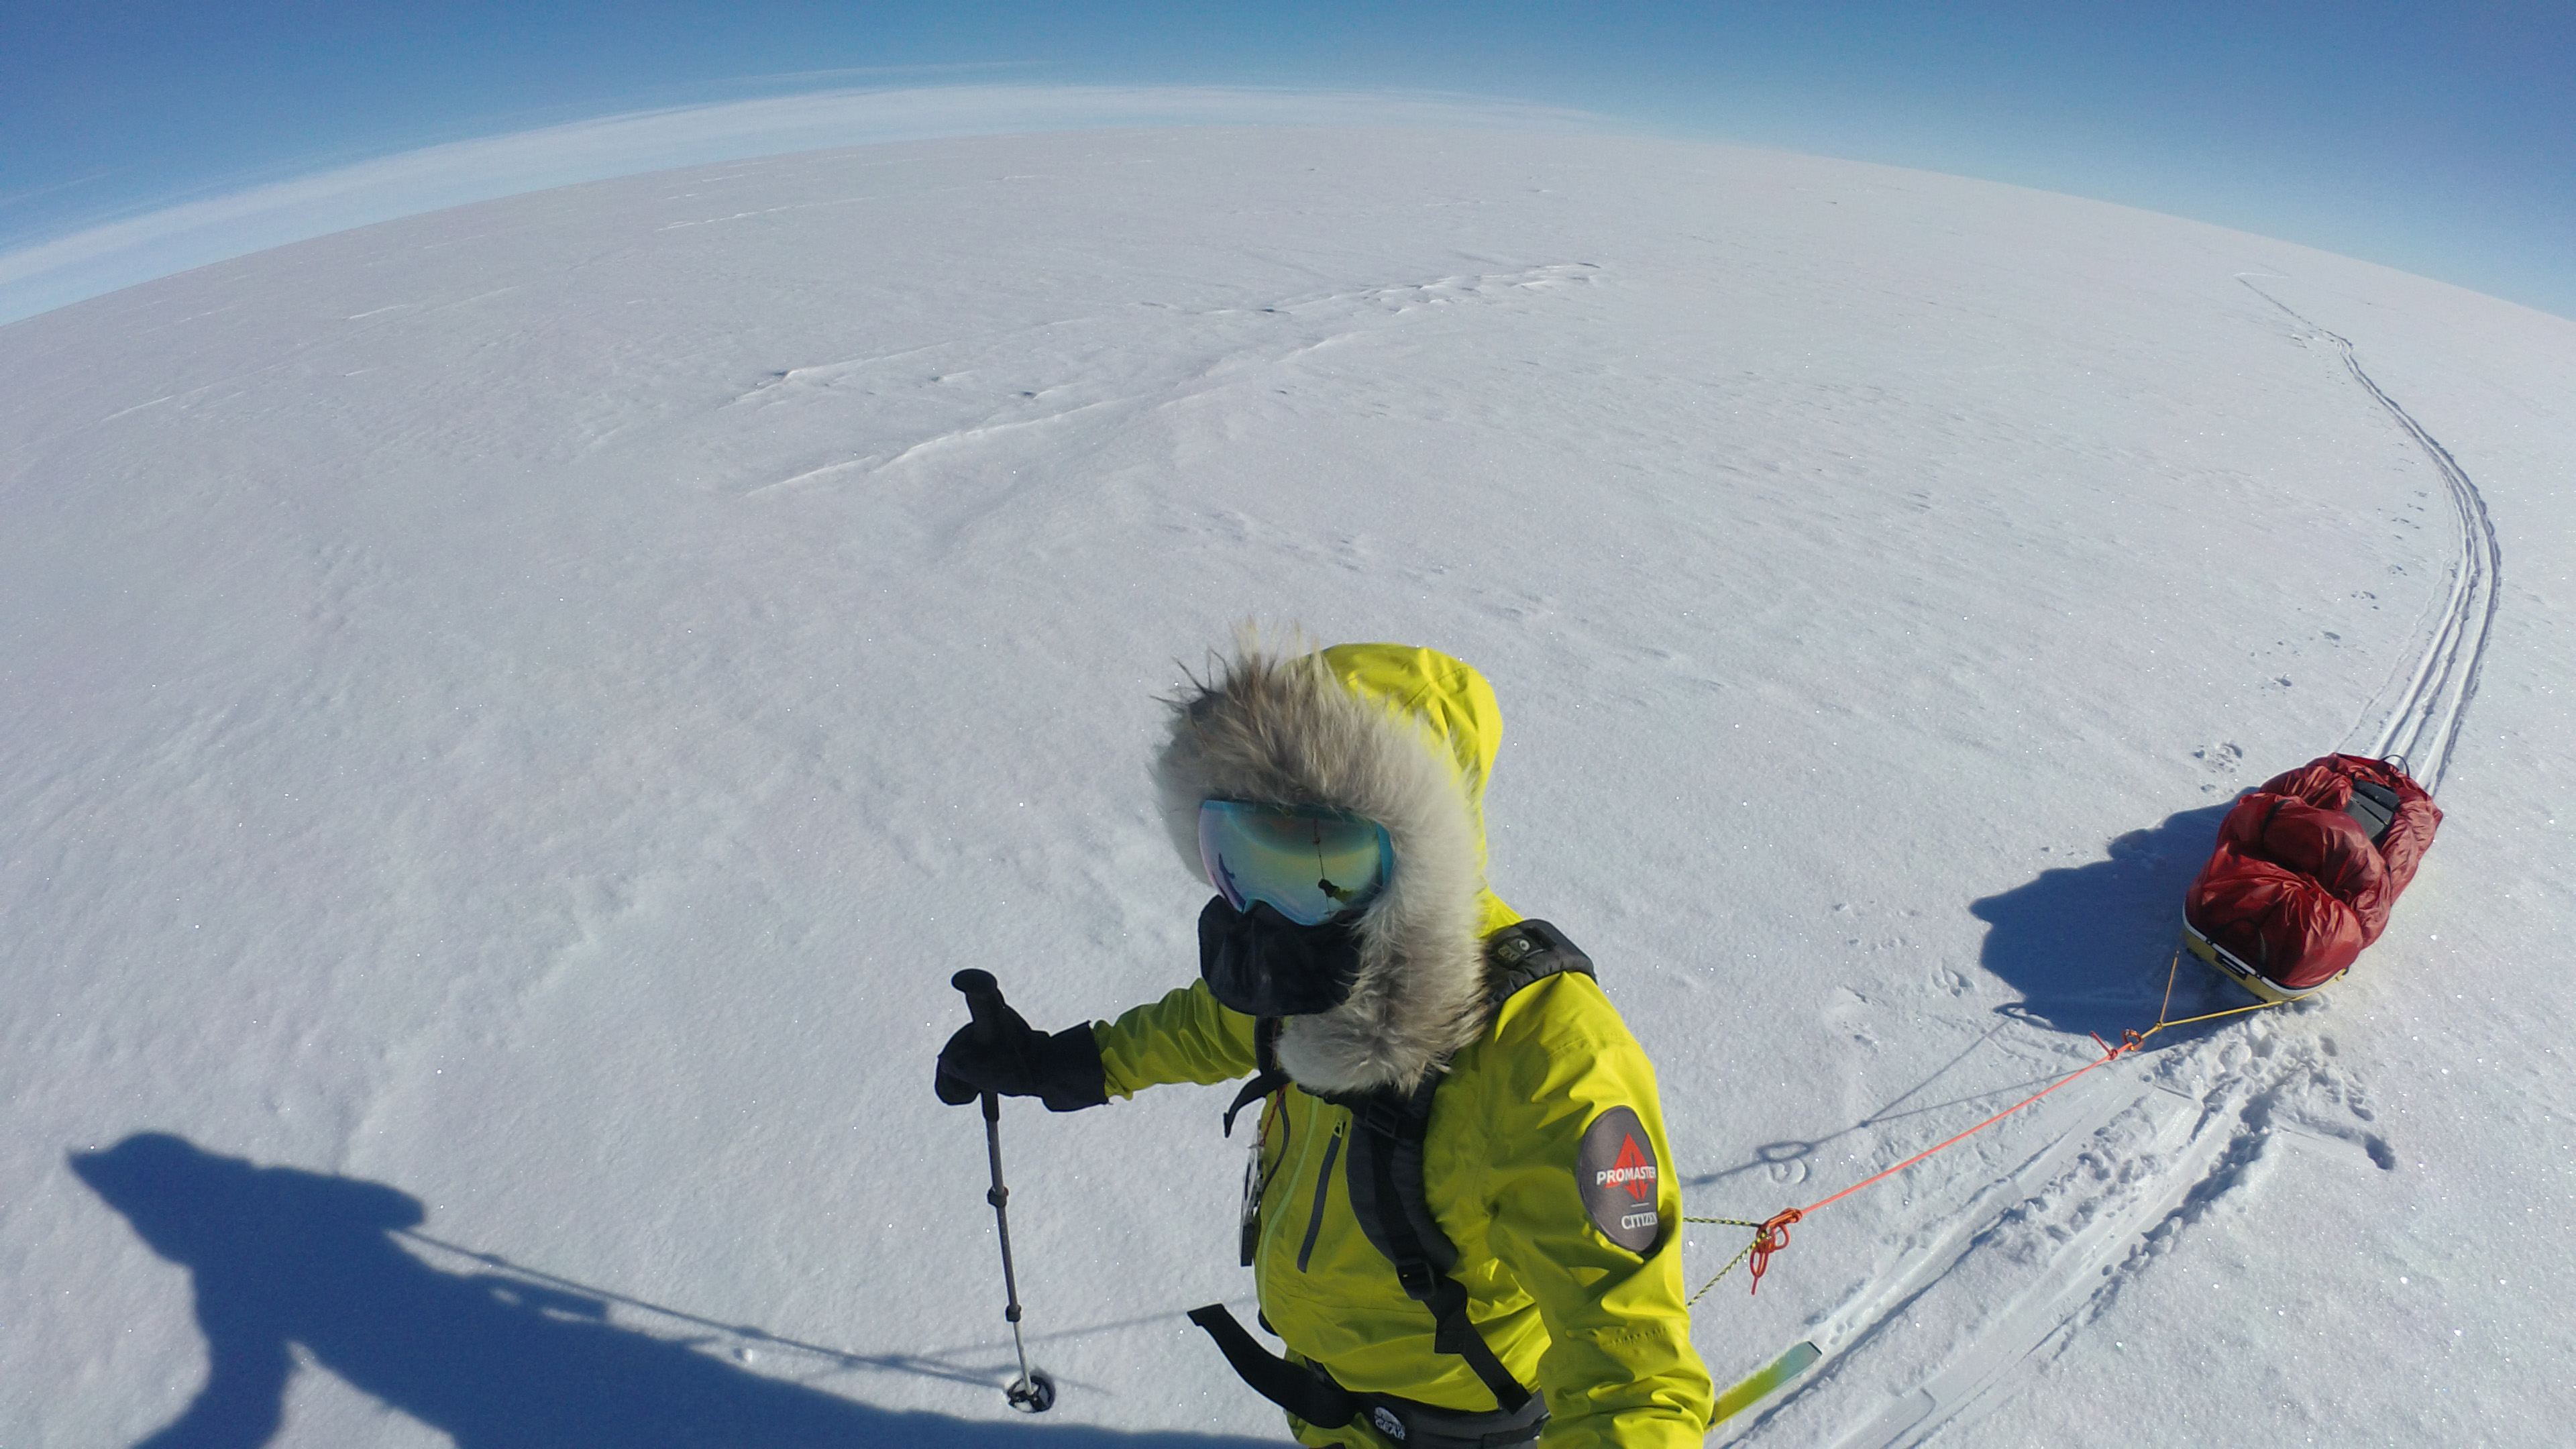 Eric Larsen | FKT south pole | Arctic adventure